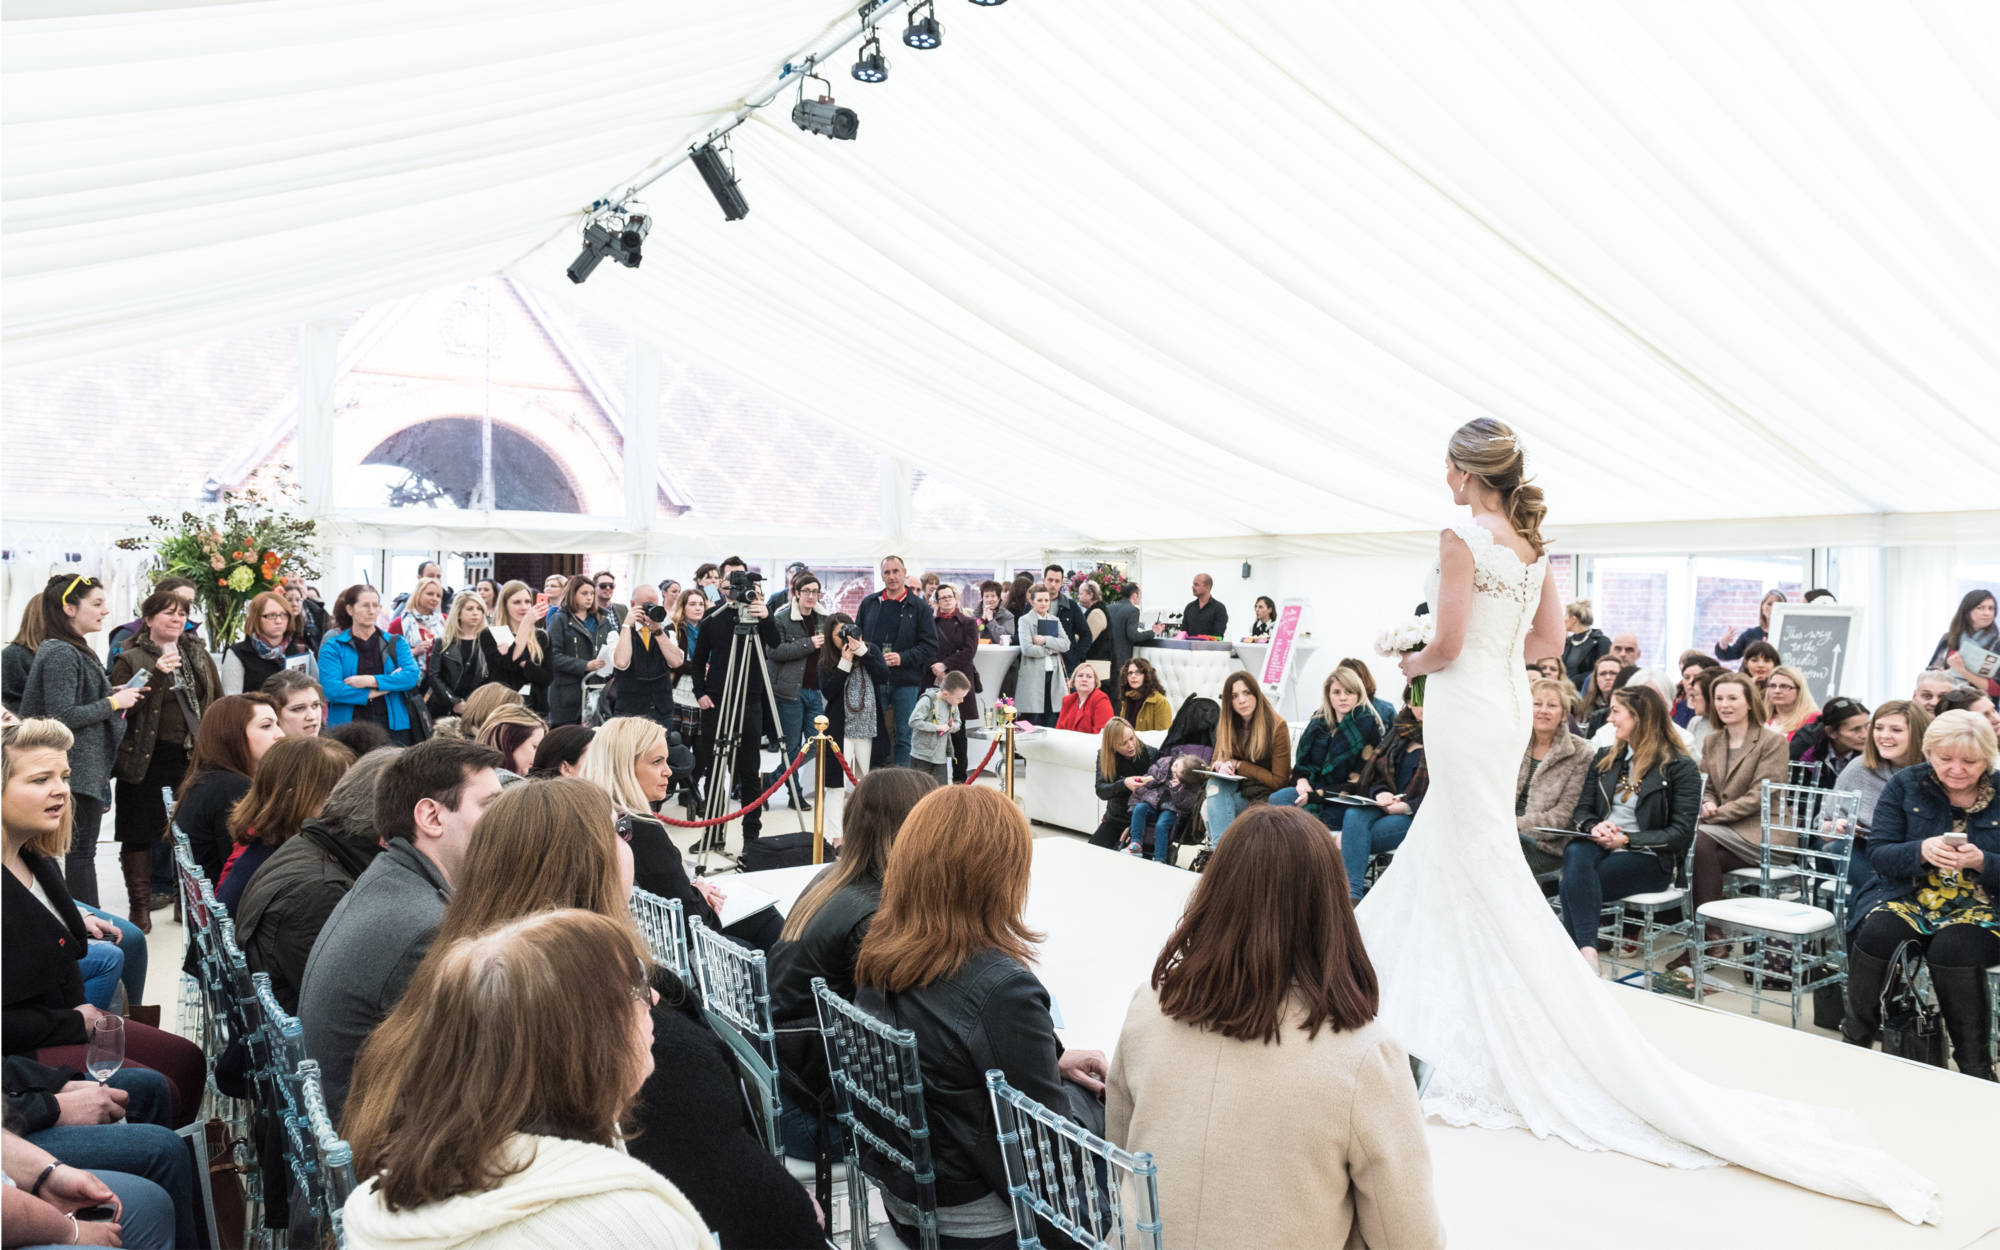 Bride facing the crowd on catwalk at Waddesdon Wedding inspiration